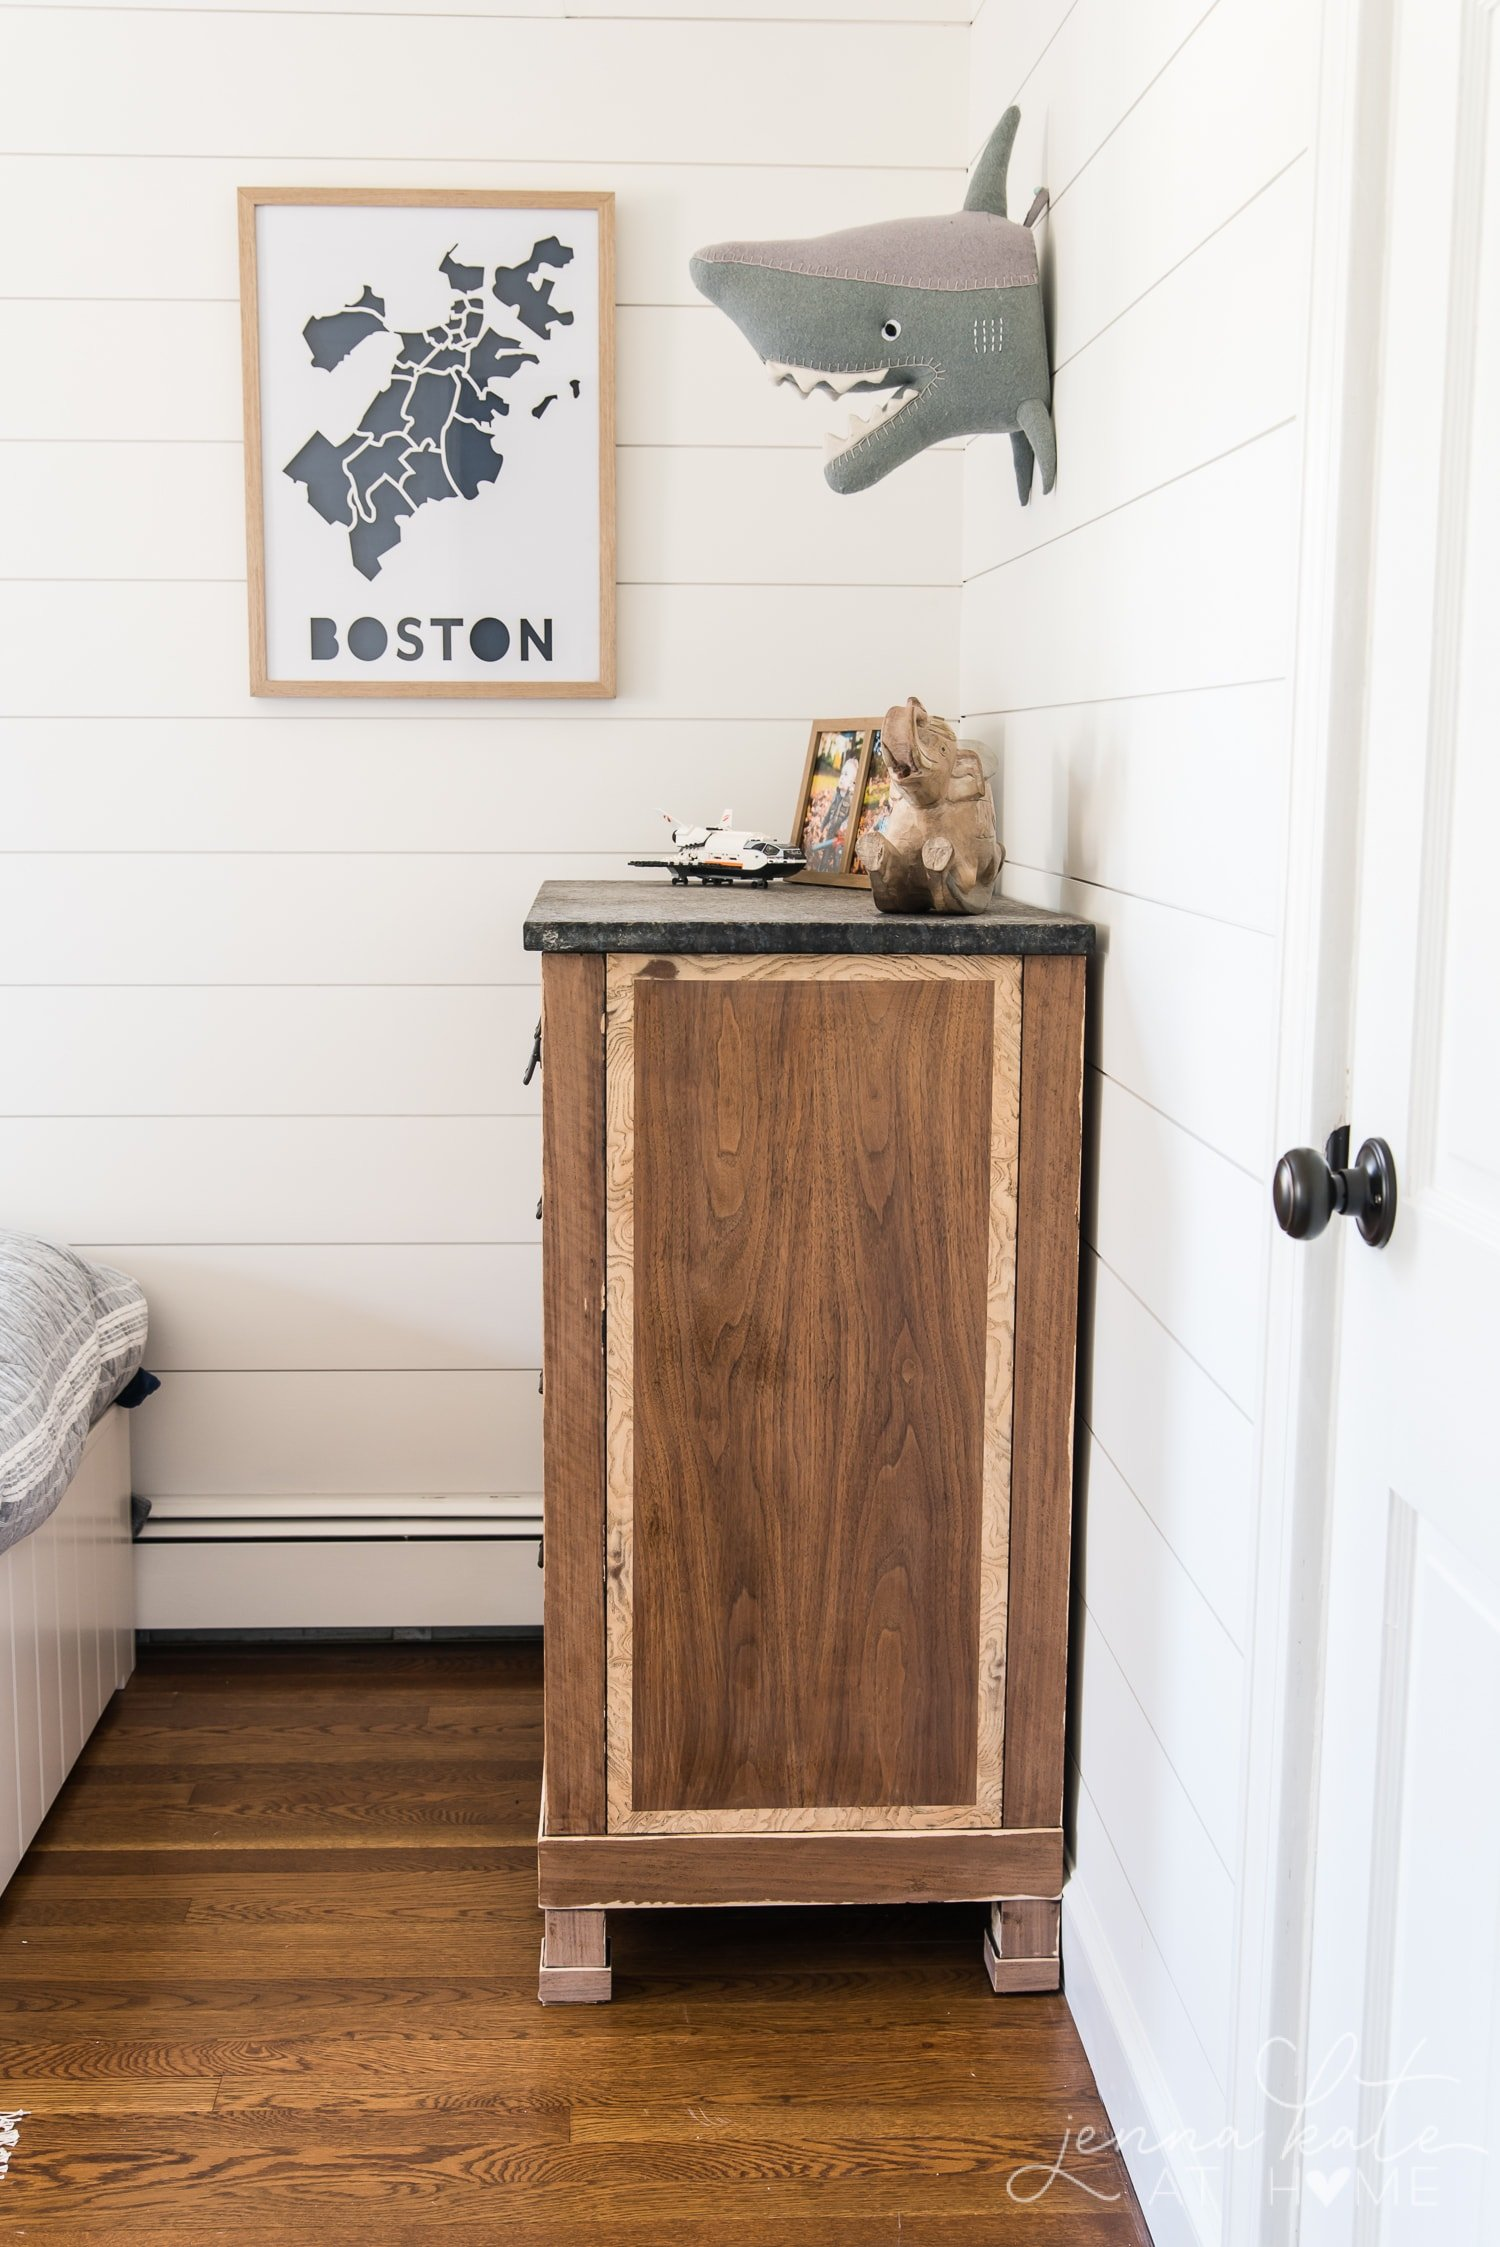 Shark head on shiplap wall makes this boys bedroom look awesome!